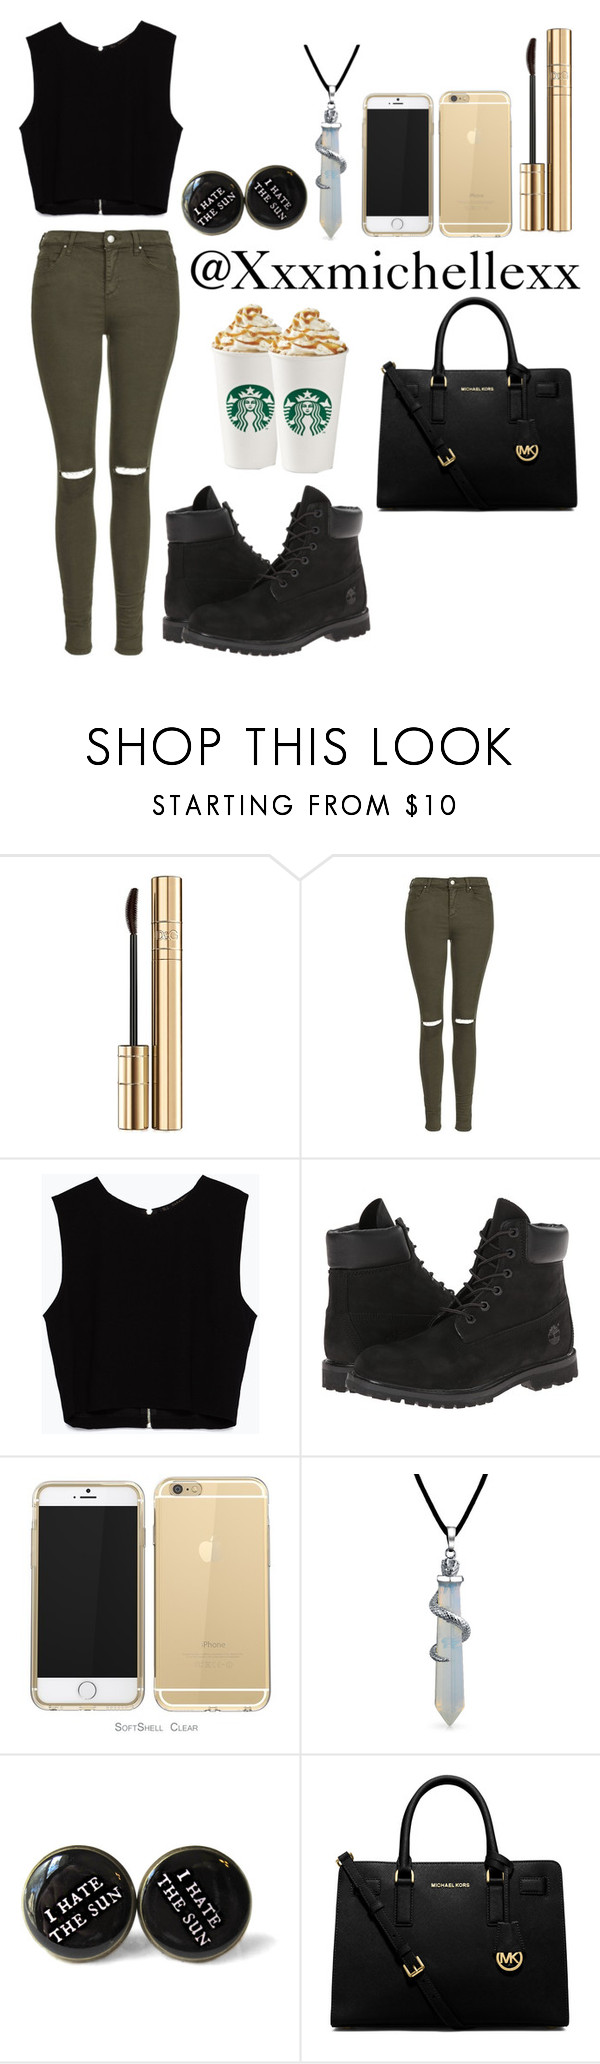 """""""Starbucks date"""" by xxxmichellexx ❤ liked on Polyvore featuring Dolce&Gabbana, Topshop, Zara, Timberland, Bling Jewelry, MICHAEL Michael Kors, women's clothing, women's fashion, women and female"""